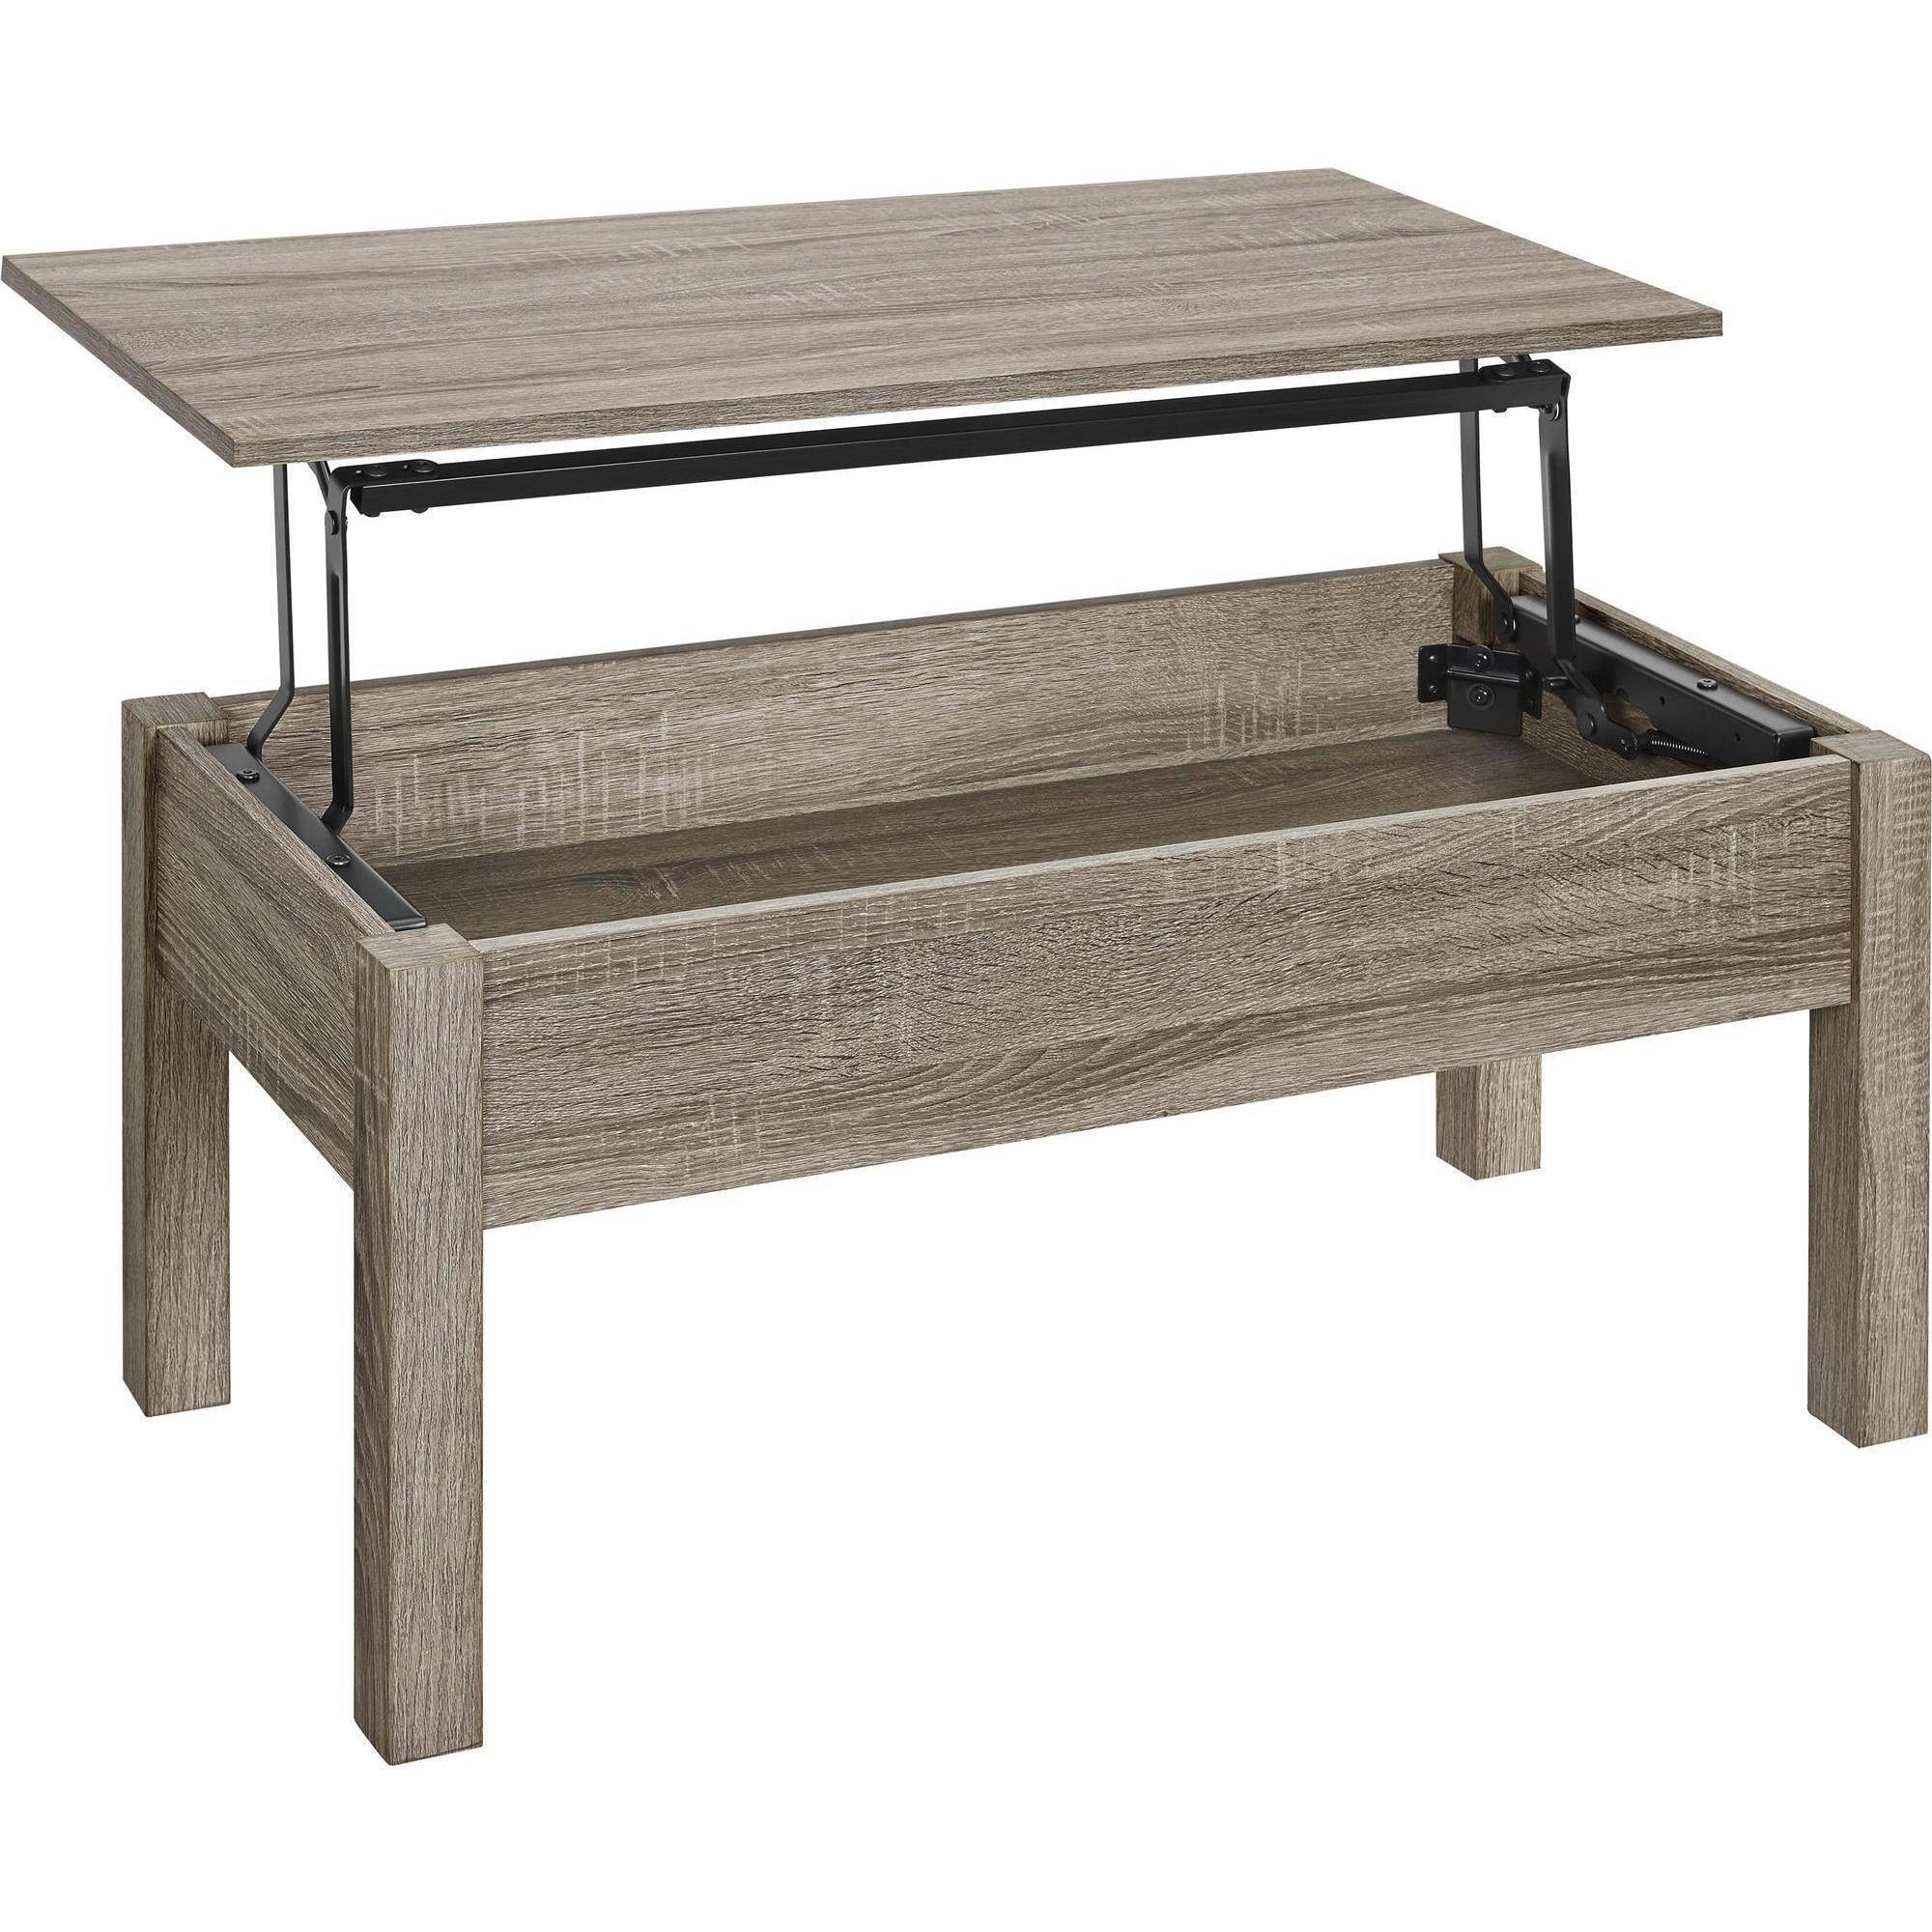 Mainstays Lift-Top Coffee Table, Multiple Colors - Walmart regarding Flip Up Coffee Tables (Image 23 of 30)